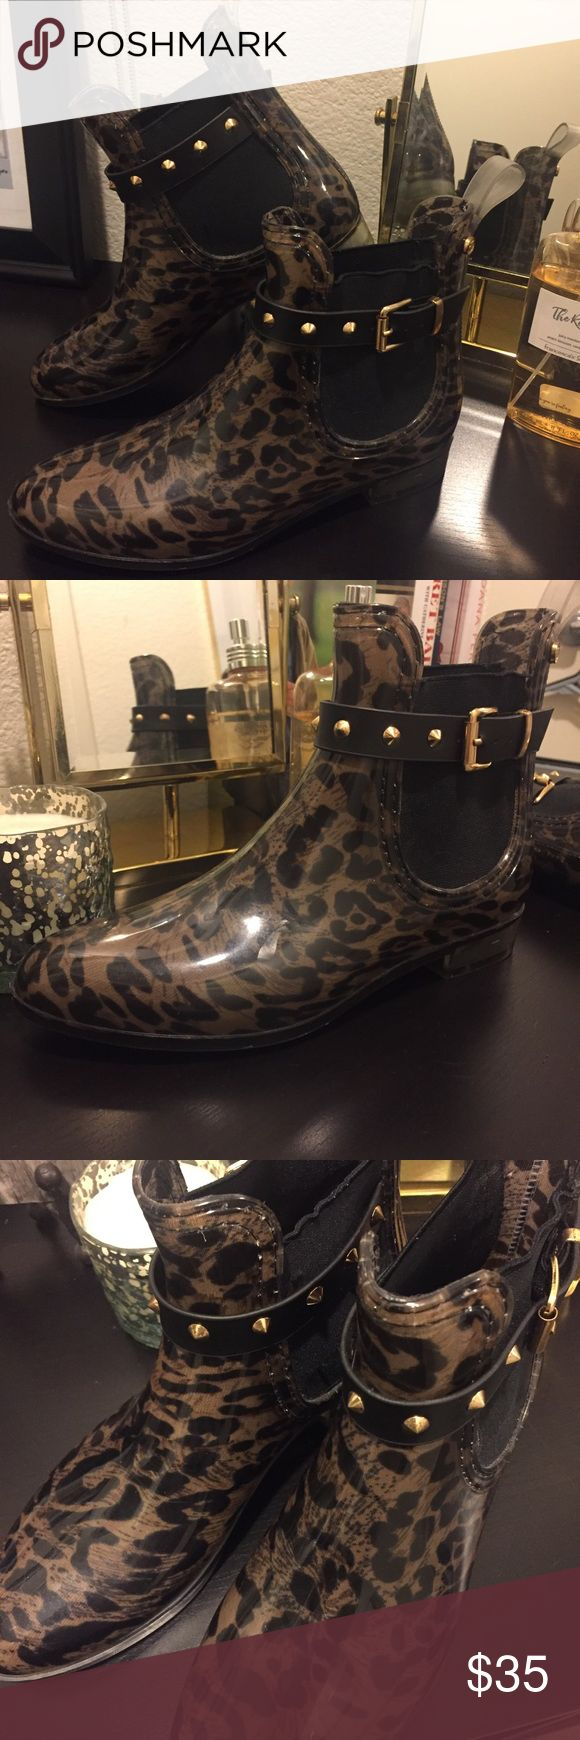 Gorgeous, AUTHENTIC Henry Ferrera Ankle Rain Boot Authentic!  Worn ONCE. Great condition. Rain-proof plastic exterior.  Leopard patterned. Gold metal detail. These are so, so cute! Size also fits 7.5 very well! henry ferrera Shoes Ankle Boots & Booties